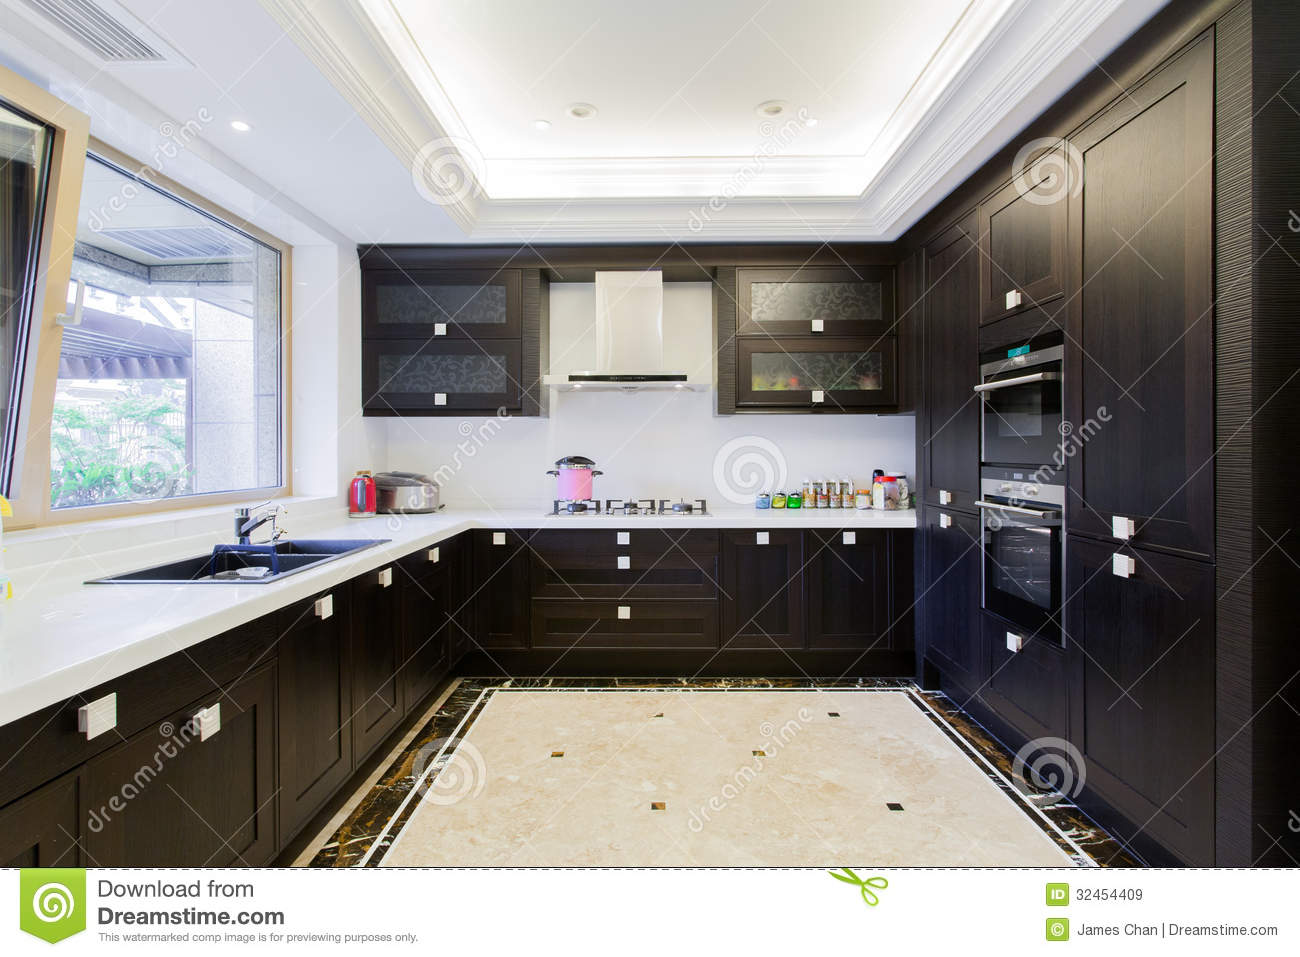 Big Modern Kitchen Royalty Free Stock Images - Image: 32454409